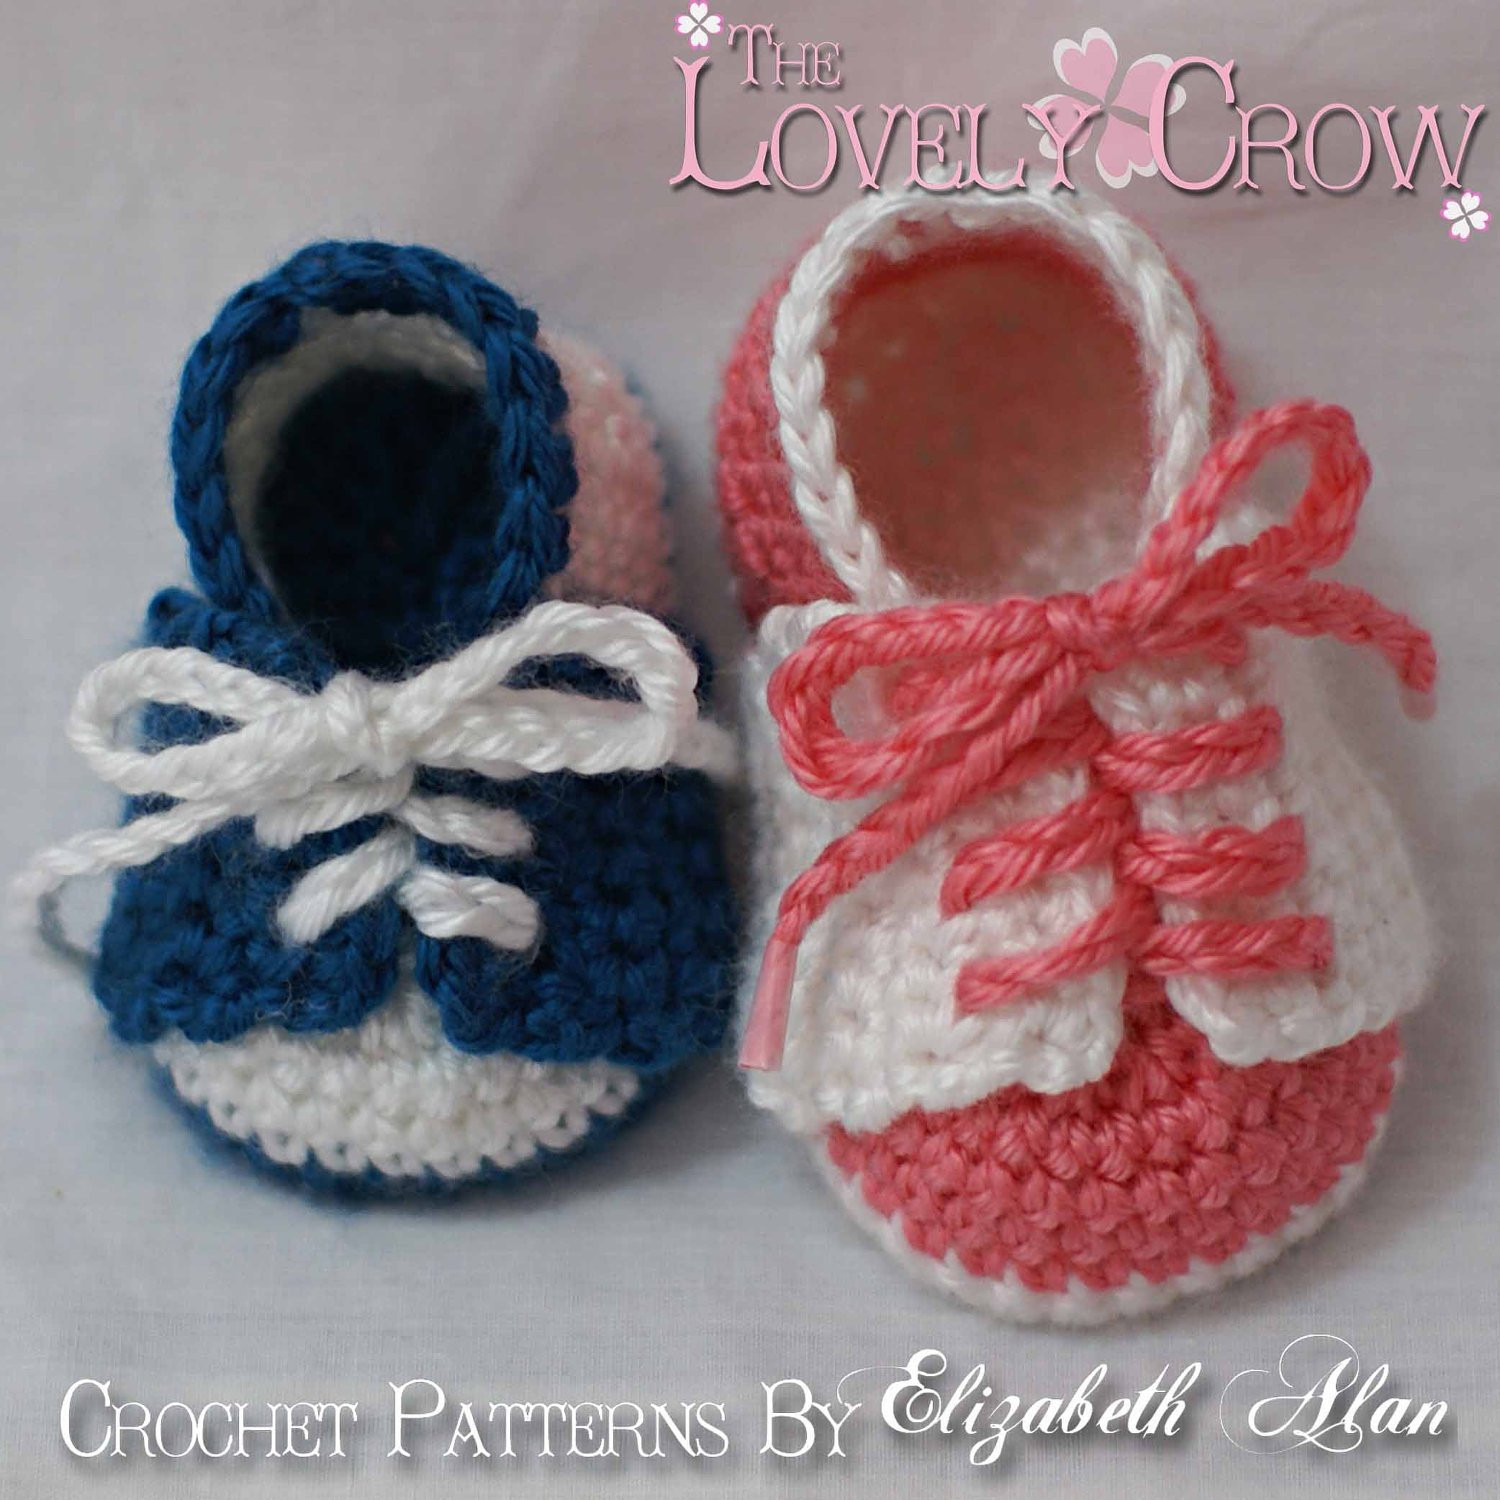 Luxury Baby Shoes Crochet Pattern for Little Sport Saddles Digital Crochet Baby Shoes Pattern Of Delightful 50 Pictures Crochet Baby Shoes Pattern